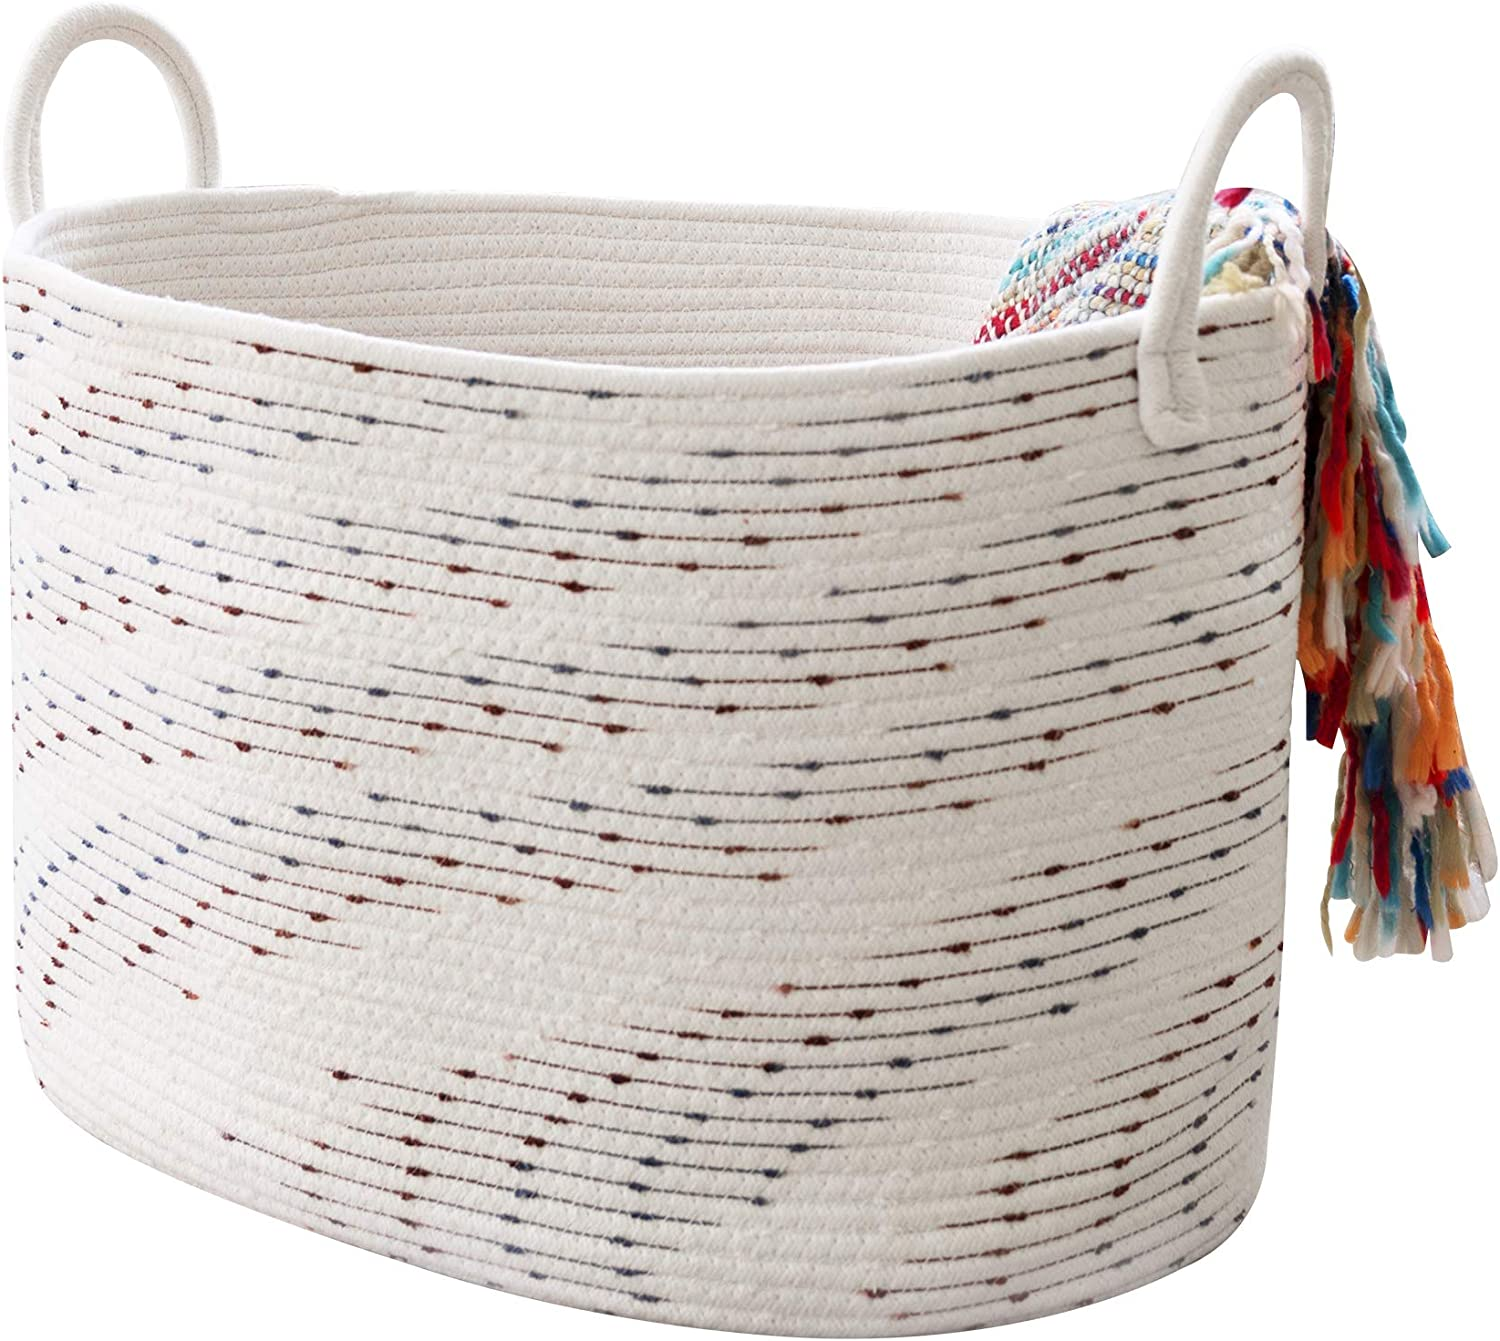 """LA JOLIE MUSE Large Cotton Rope Blanket Basket, Soft Woven Laundry Basket for Blankets, Toys, Clothing, Decorative Baskets for Living Room, Nursery Storage, 21""""(L) x 15""""(W) x 13""""(H), Oval"""